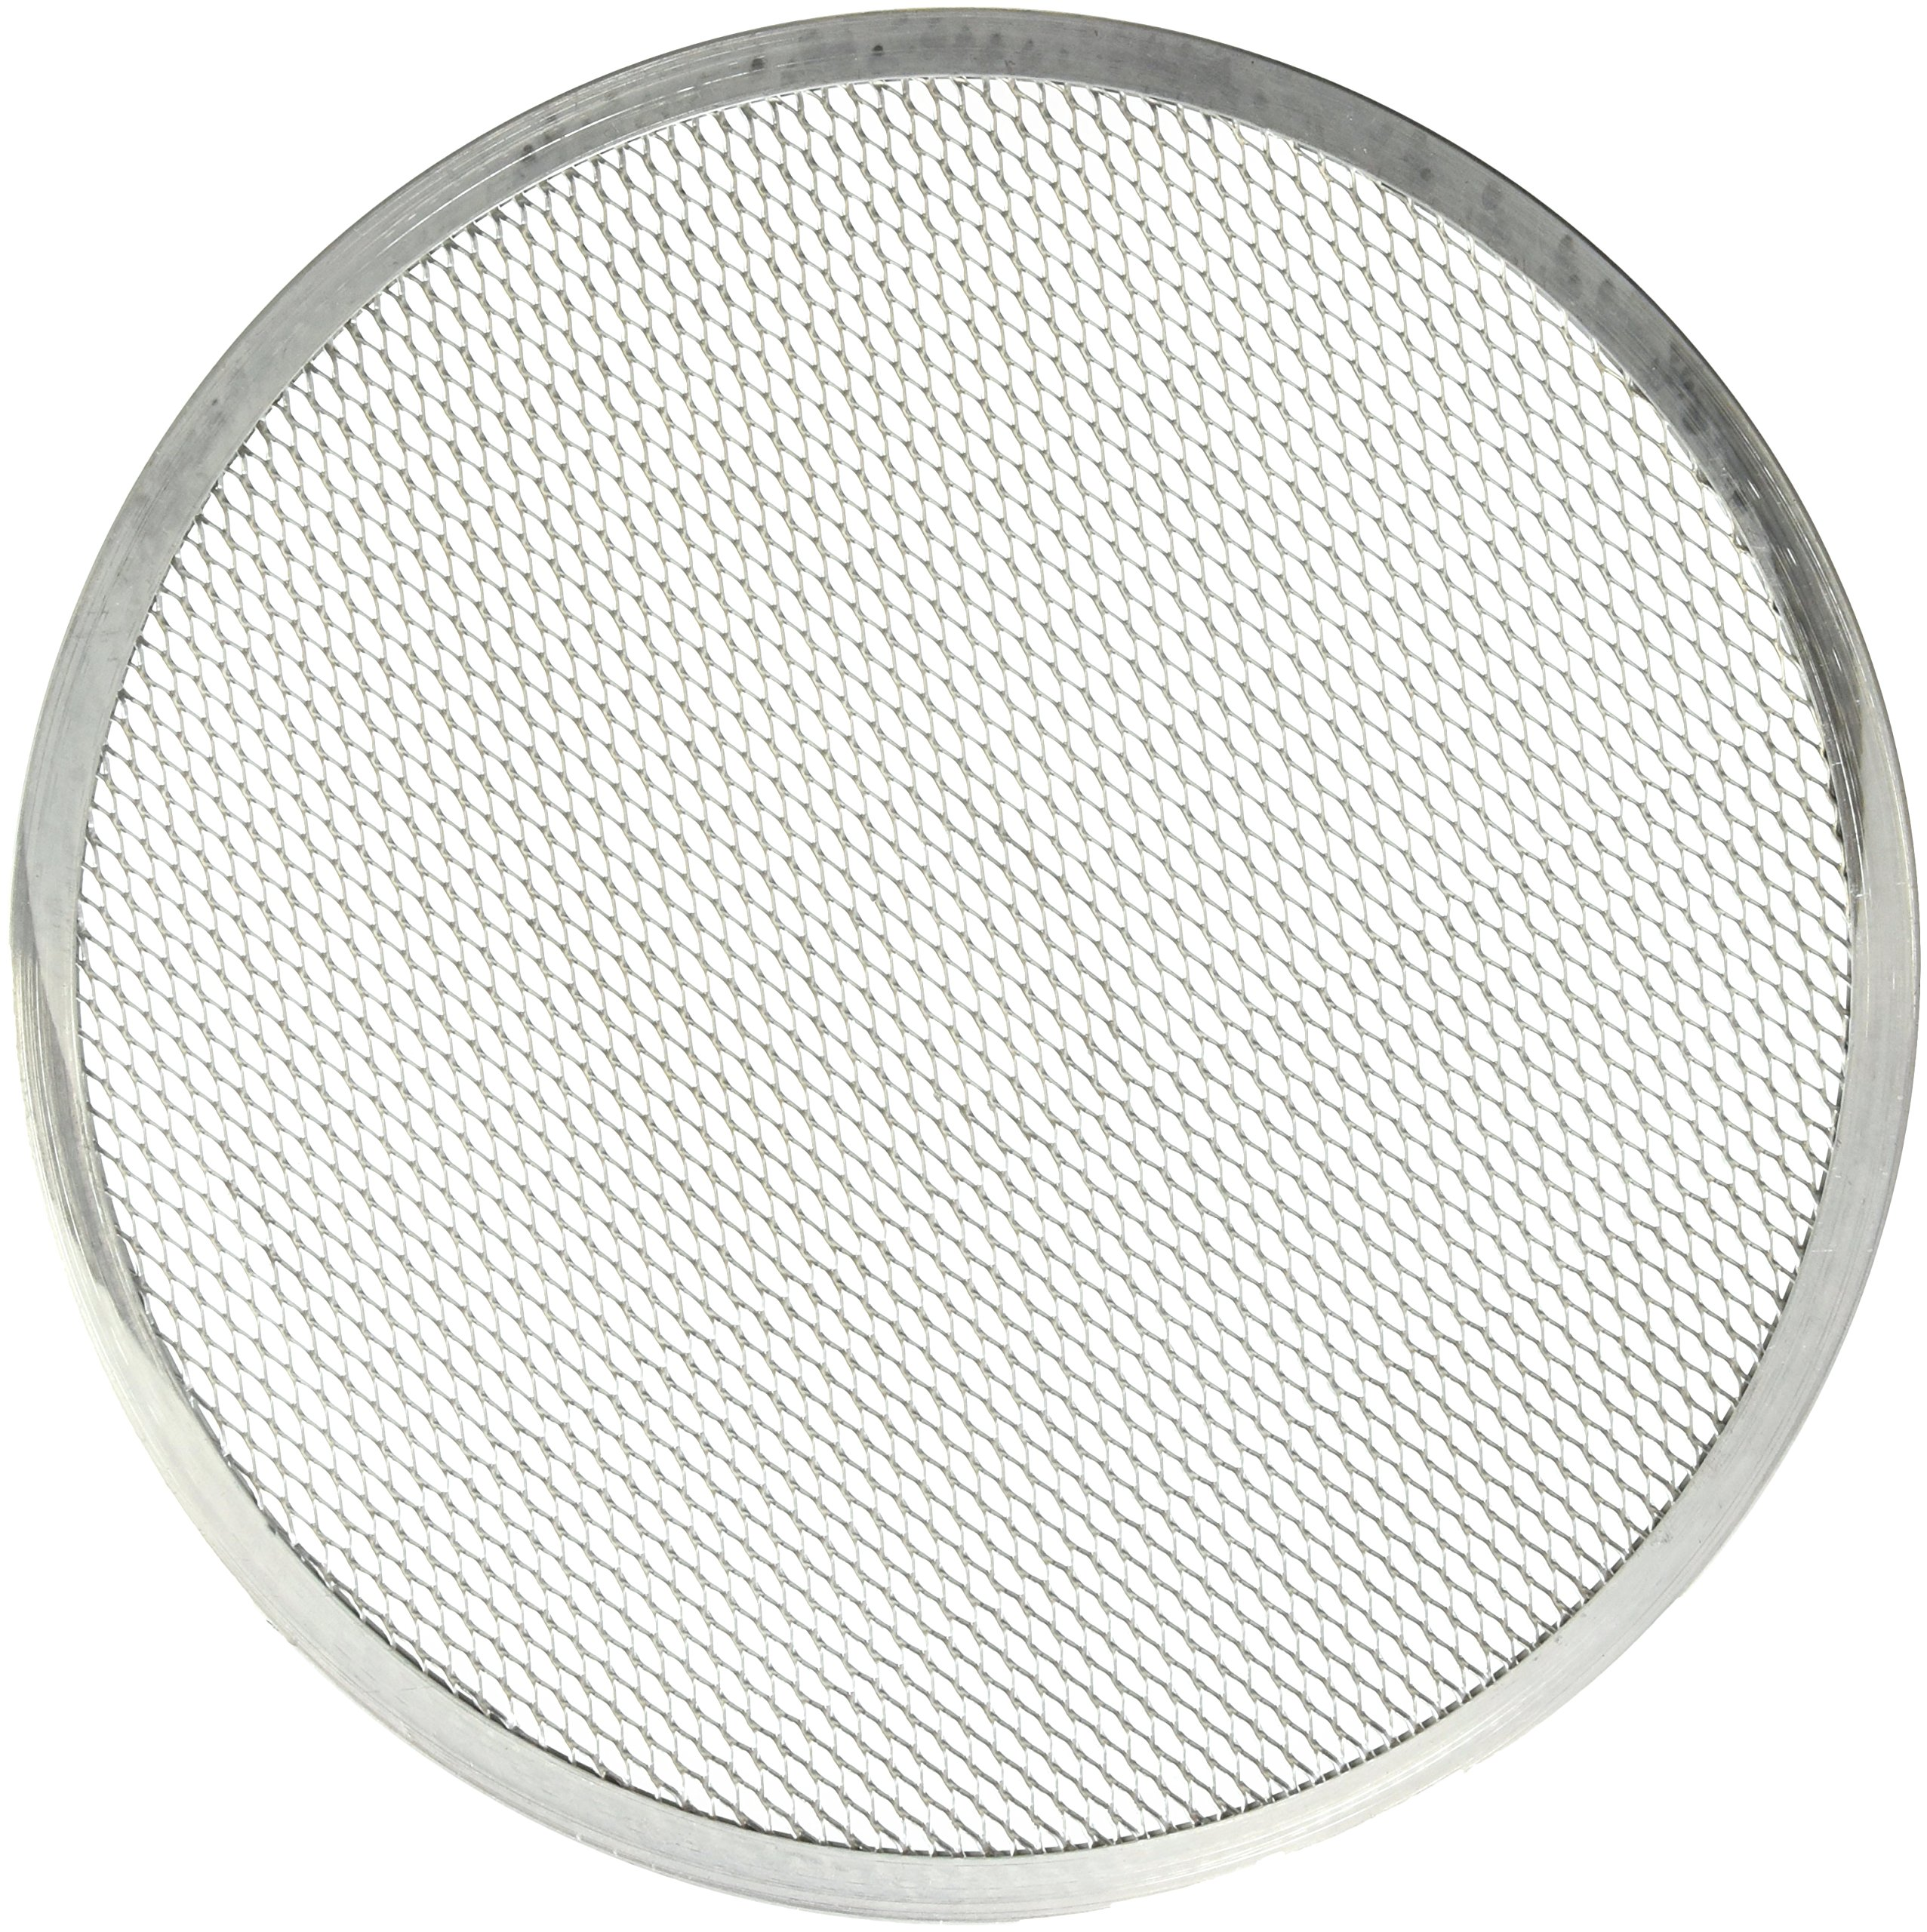 American Metalcraft 18715 Pizza Pans, 15.05'' Length, 15'' Width, Silver